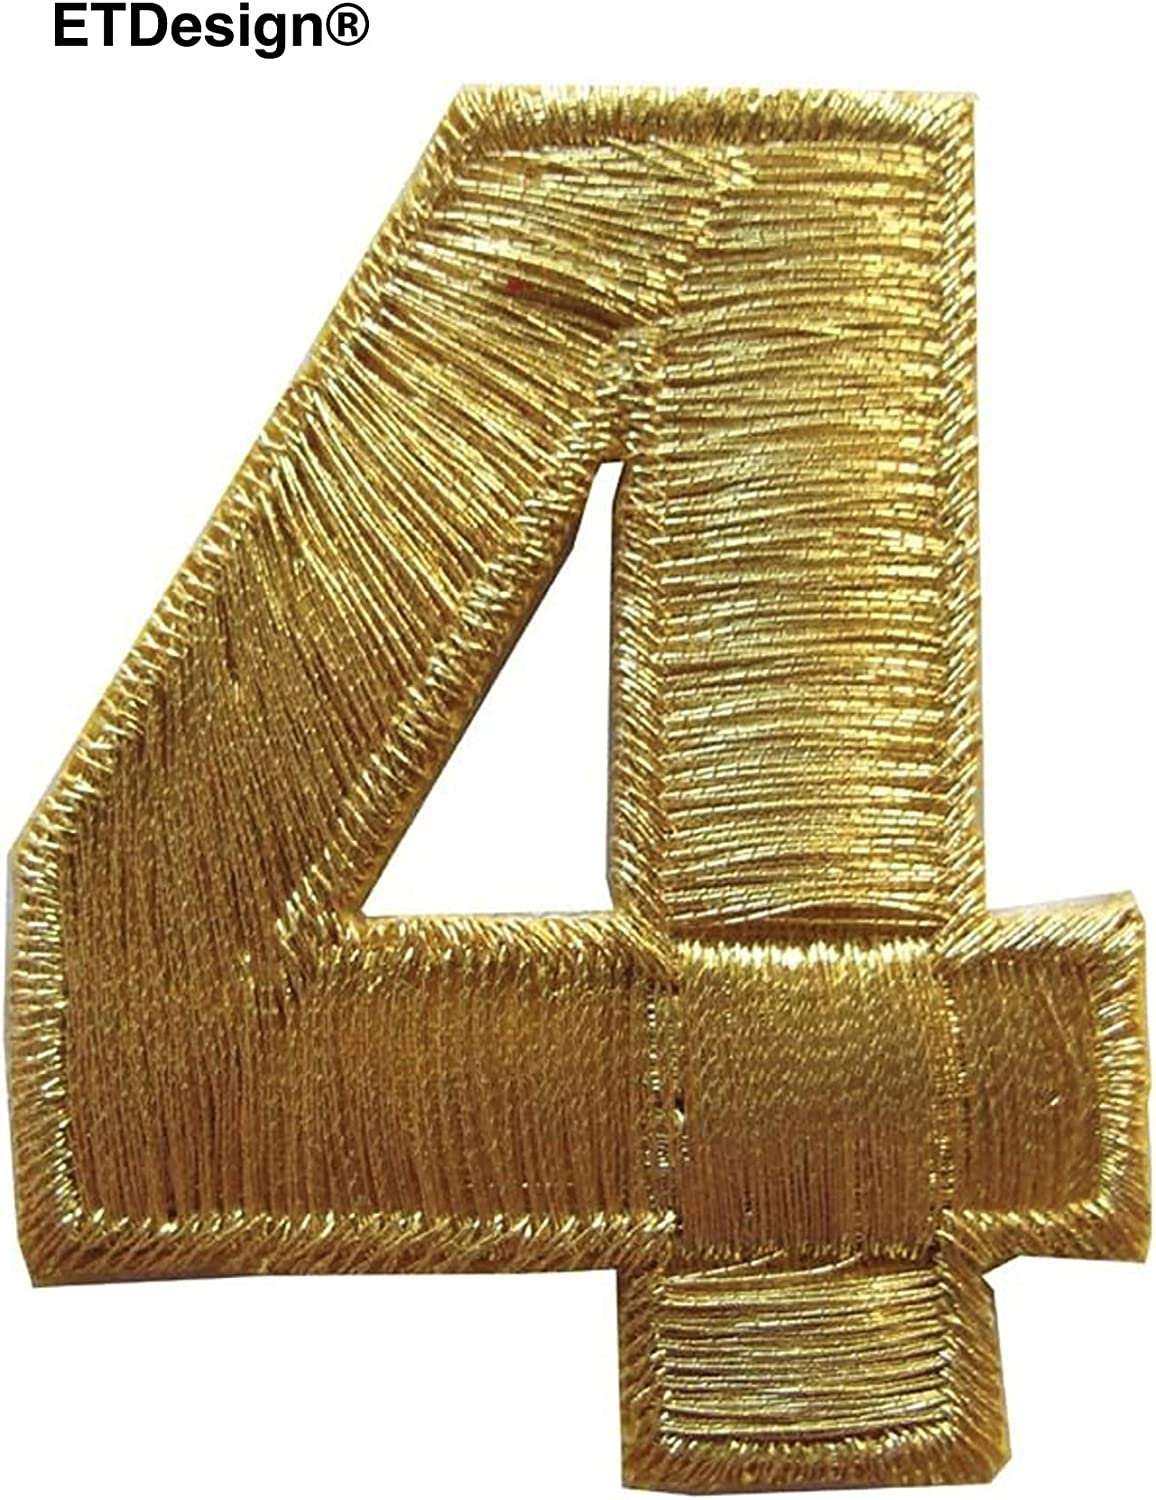 """NUMBERS-2/""""H Gold Number /""""9/"""" Iron On Embroidery Appliqué Patch"""